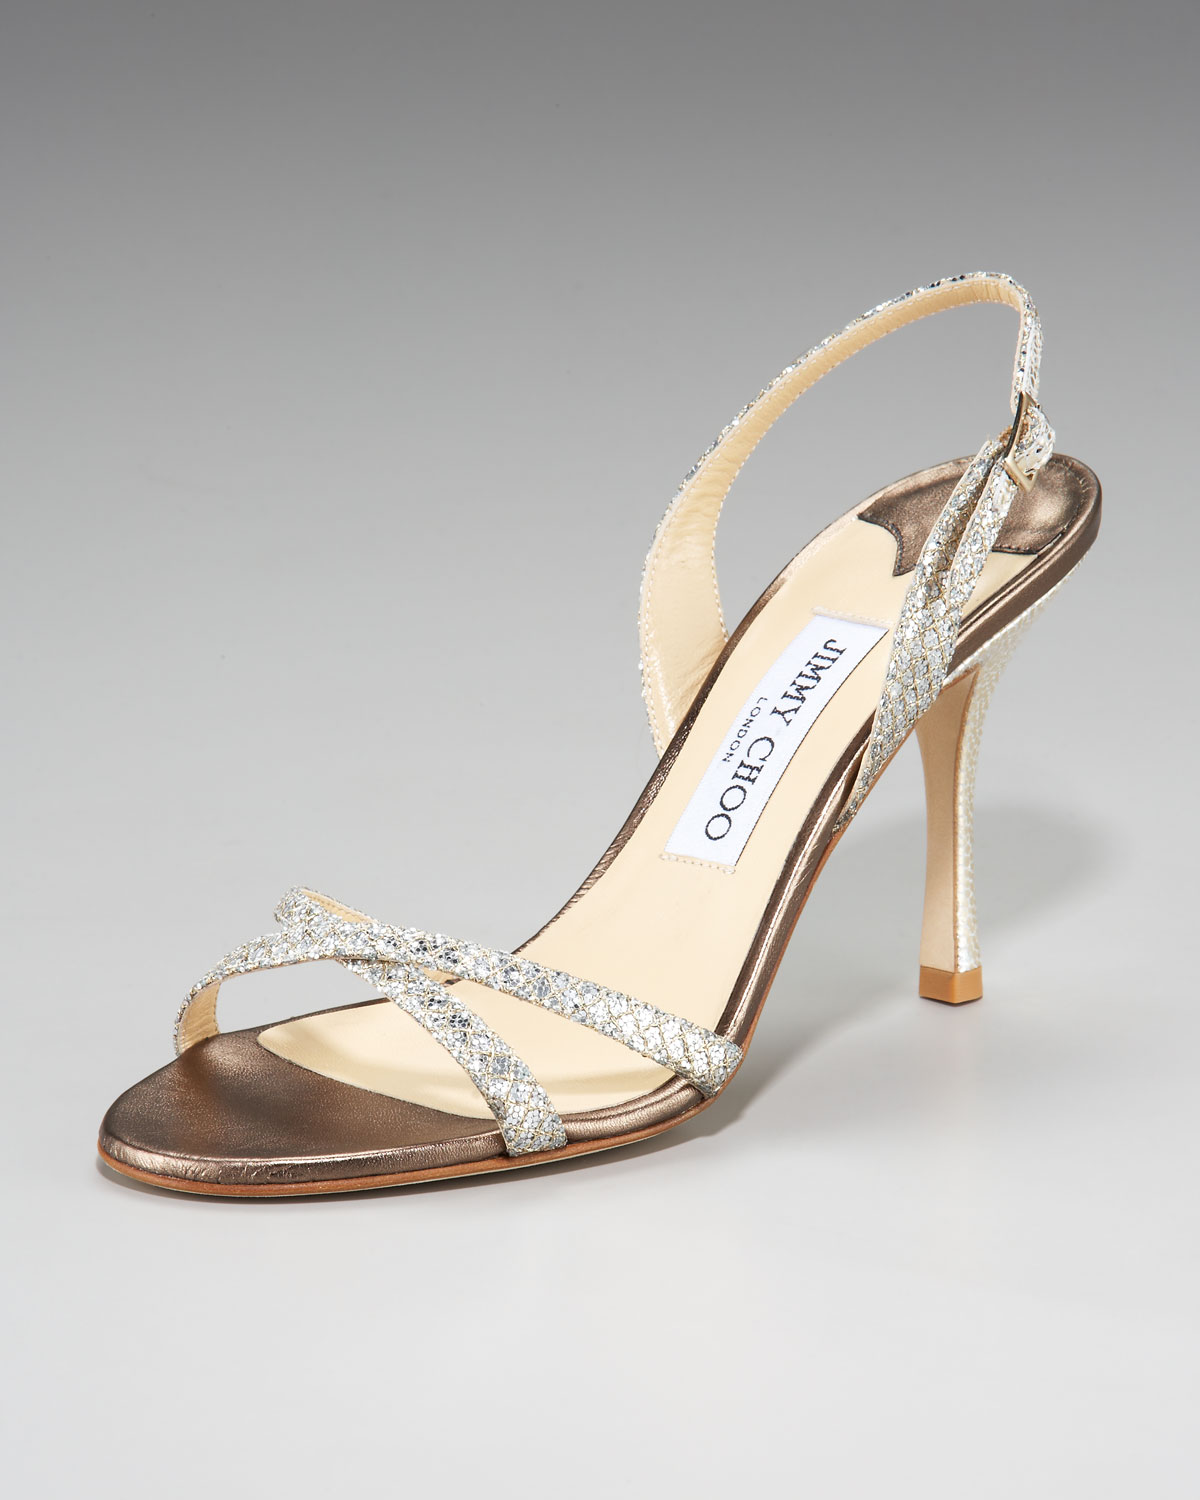 2523ea2c38 Gallery. Previously sold at: Neiman Marcus · Women's Jimmy Choo Glitter